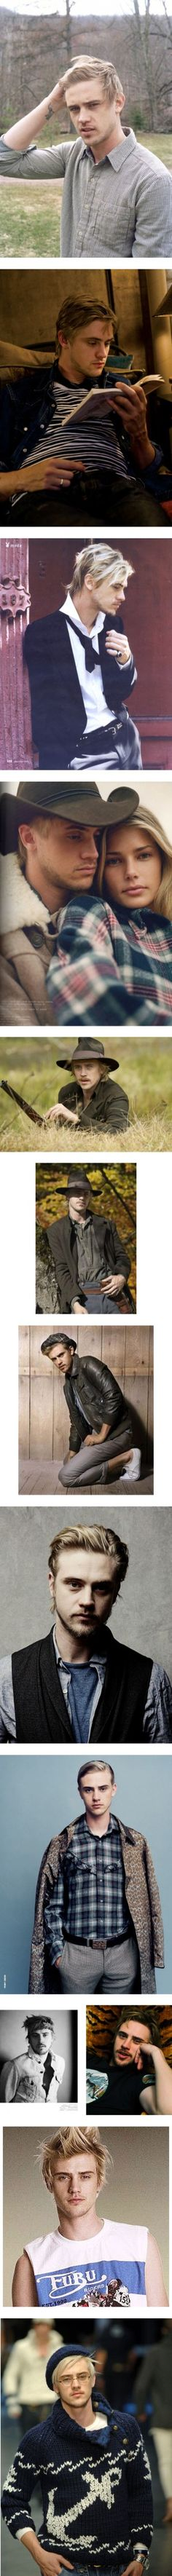 Boyd Holbrook by ltspork on Polyvore featuring actors, boyd holbrook, men, boys, models, people, pictures, faces, photo's and cintia dicker